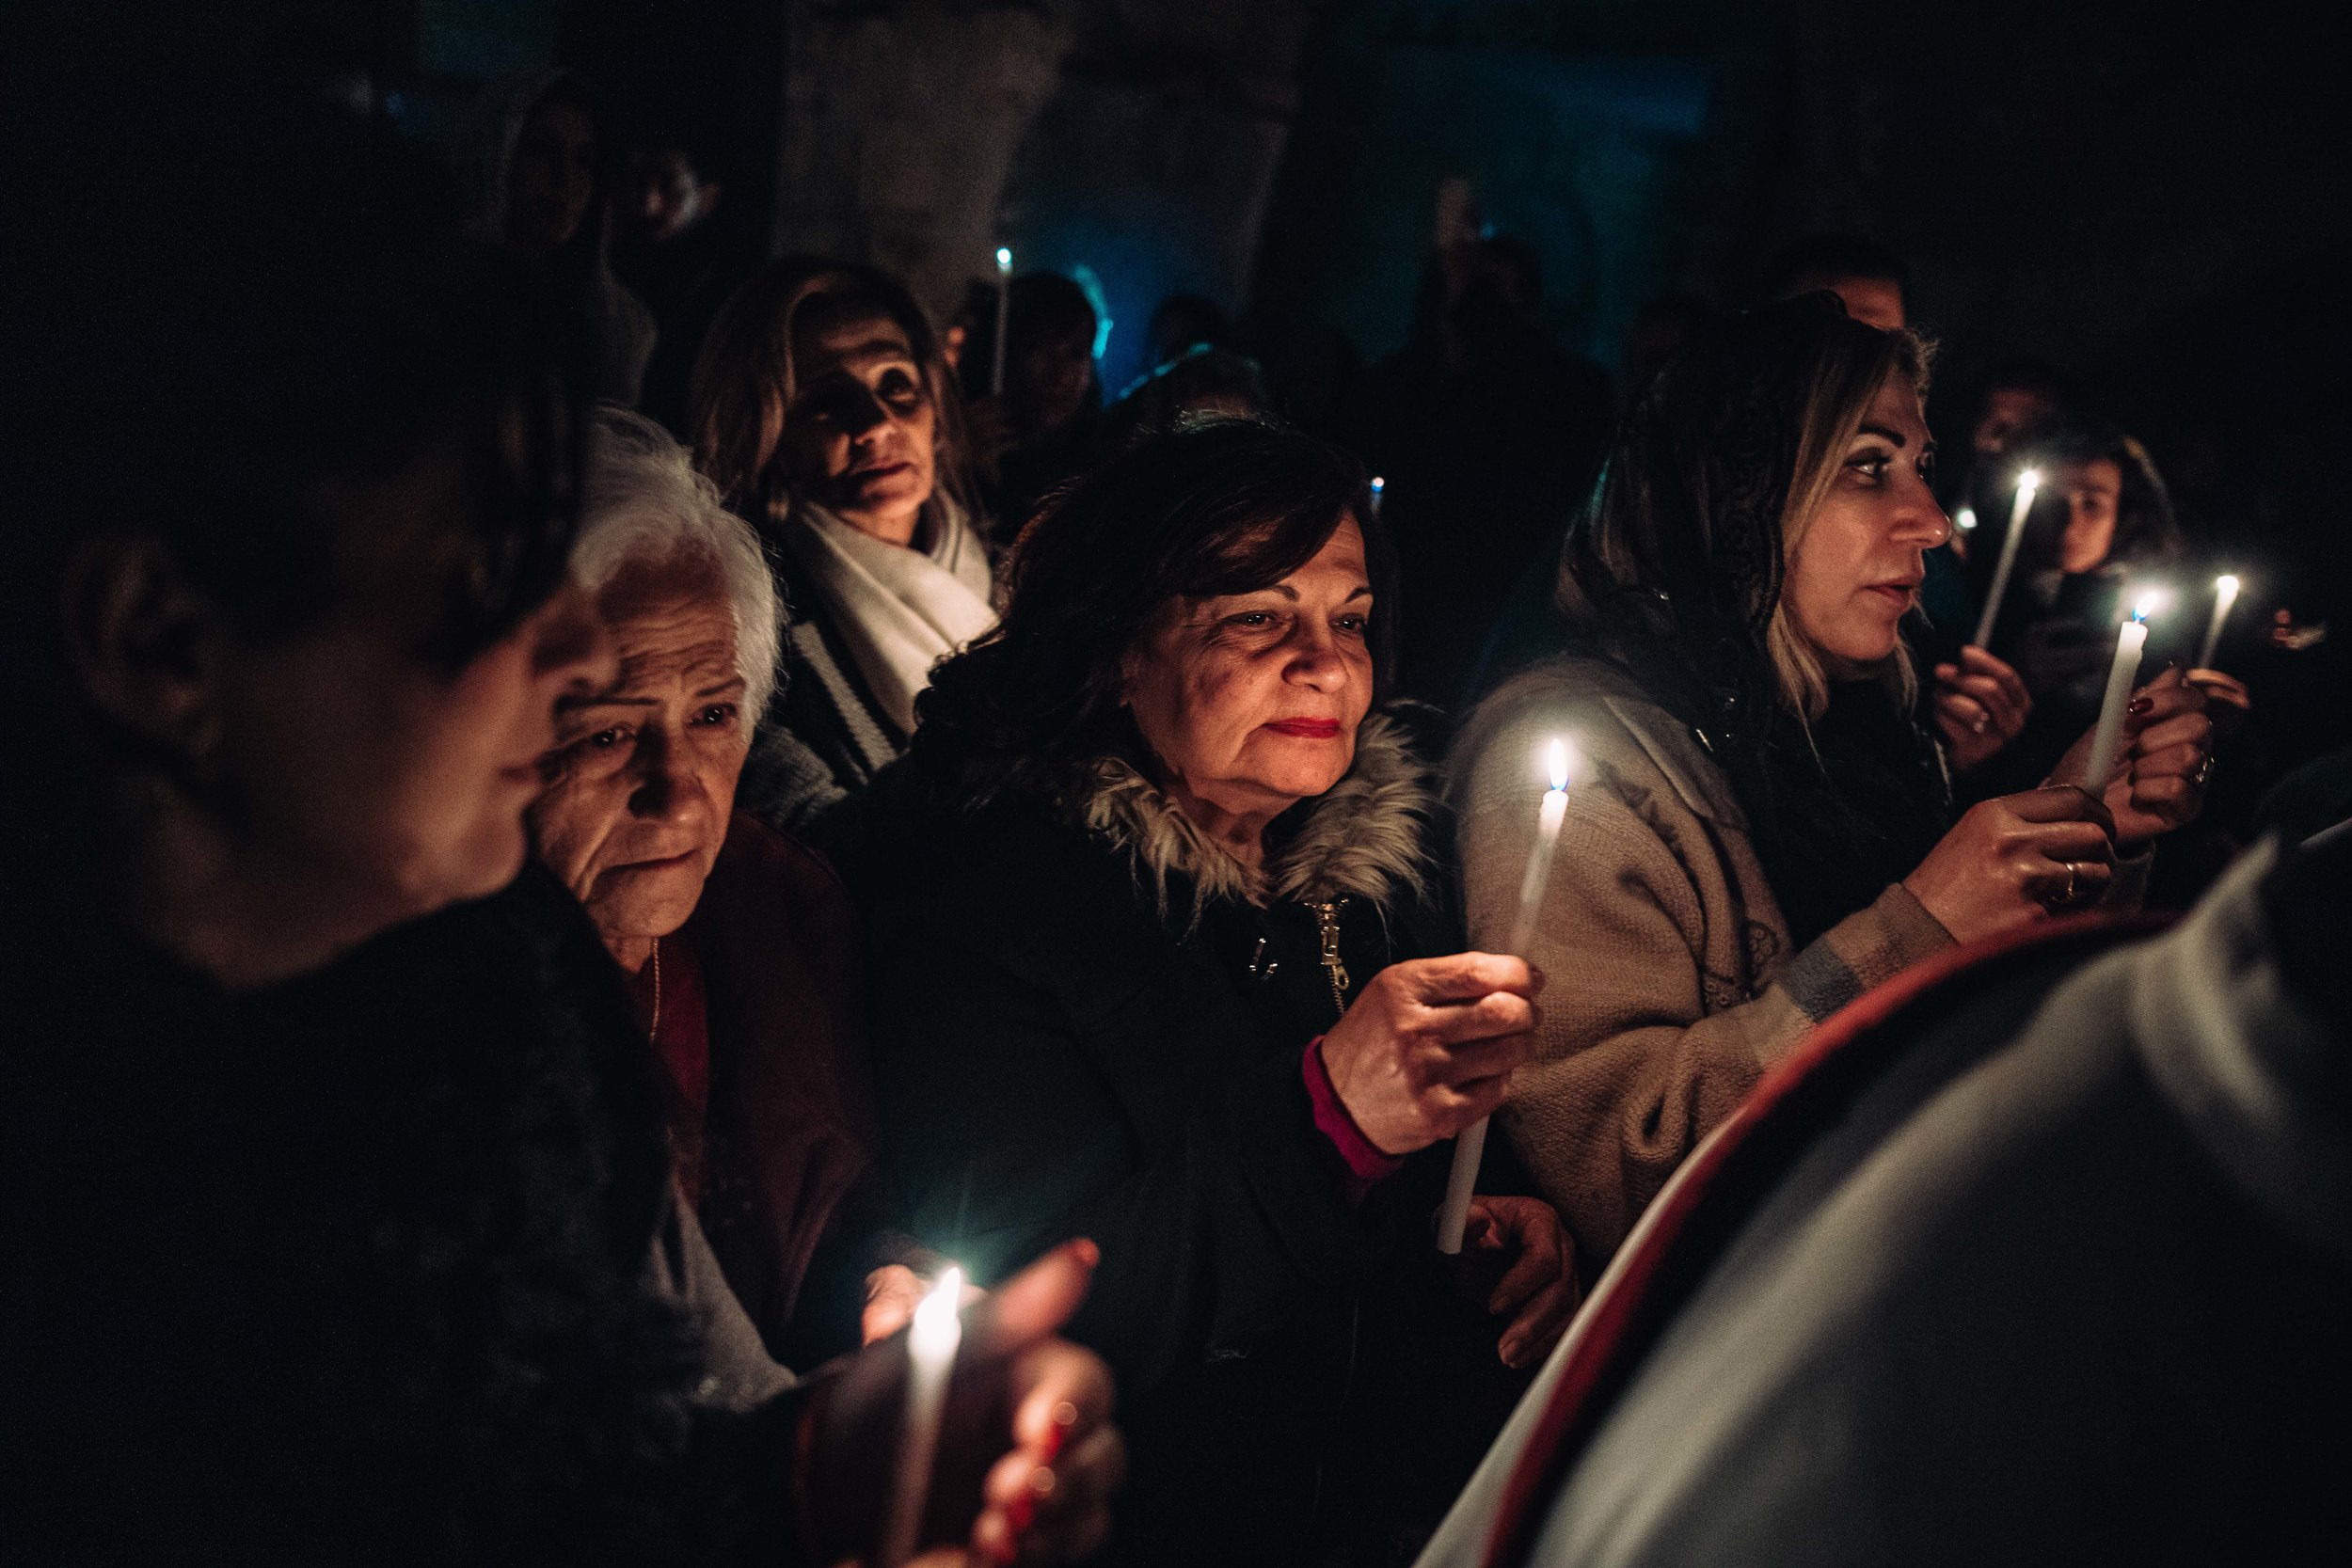 Syrian Orthodox worshipper are participating the easter ceremony in Saint Marks`s Jerusalem